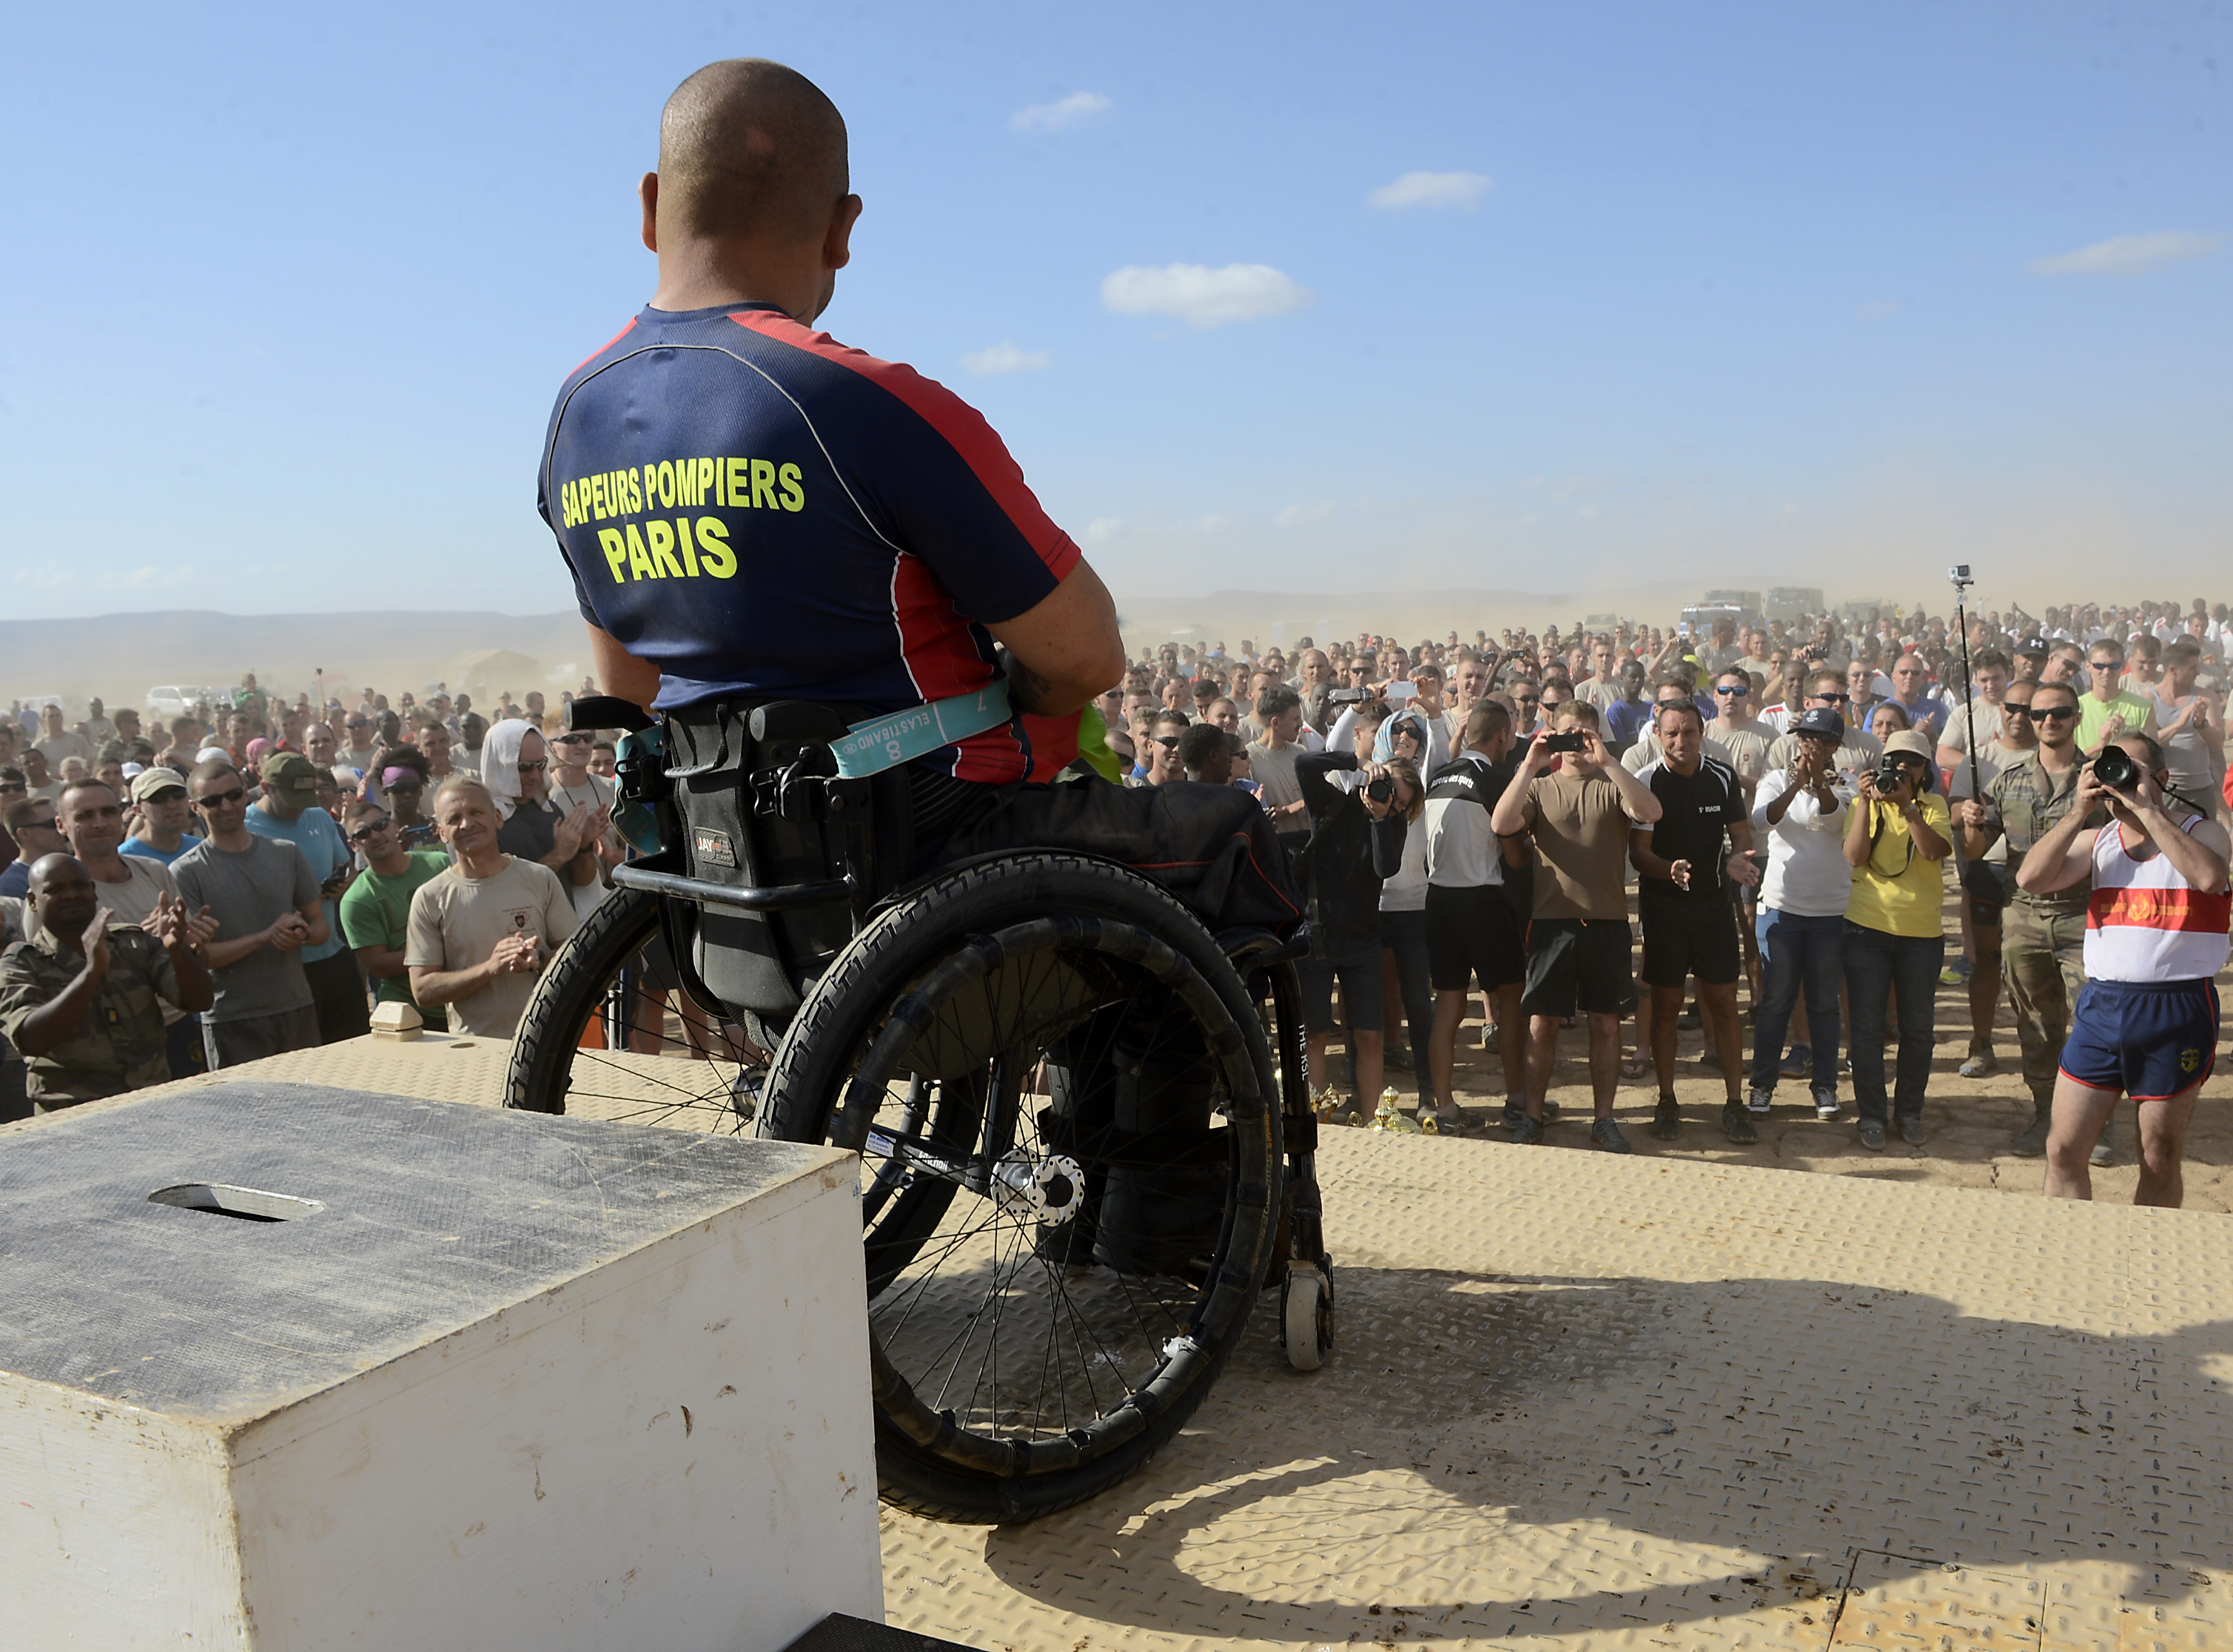 French Army Sgt. Vincent Dorival, Paris Fire Brigade, is cheered on by more than 1,500 fellow competitors after completing the Annual Grand Bara 15K race Dec. 17, 2015, in Djibouti. Dorival continues to serve as a reservist in the French Army. (U.S. Air Force photo by Tech. Sgt. Dan DeCook)